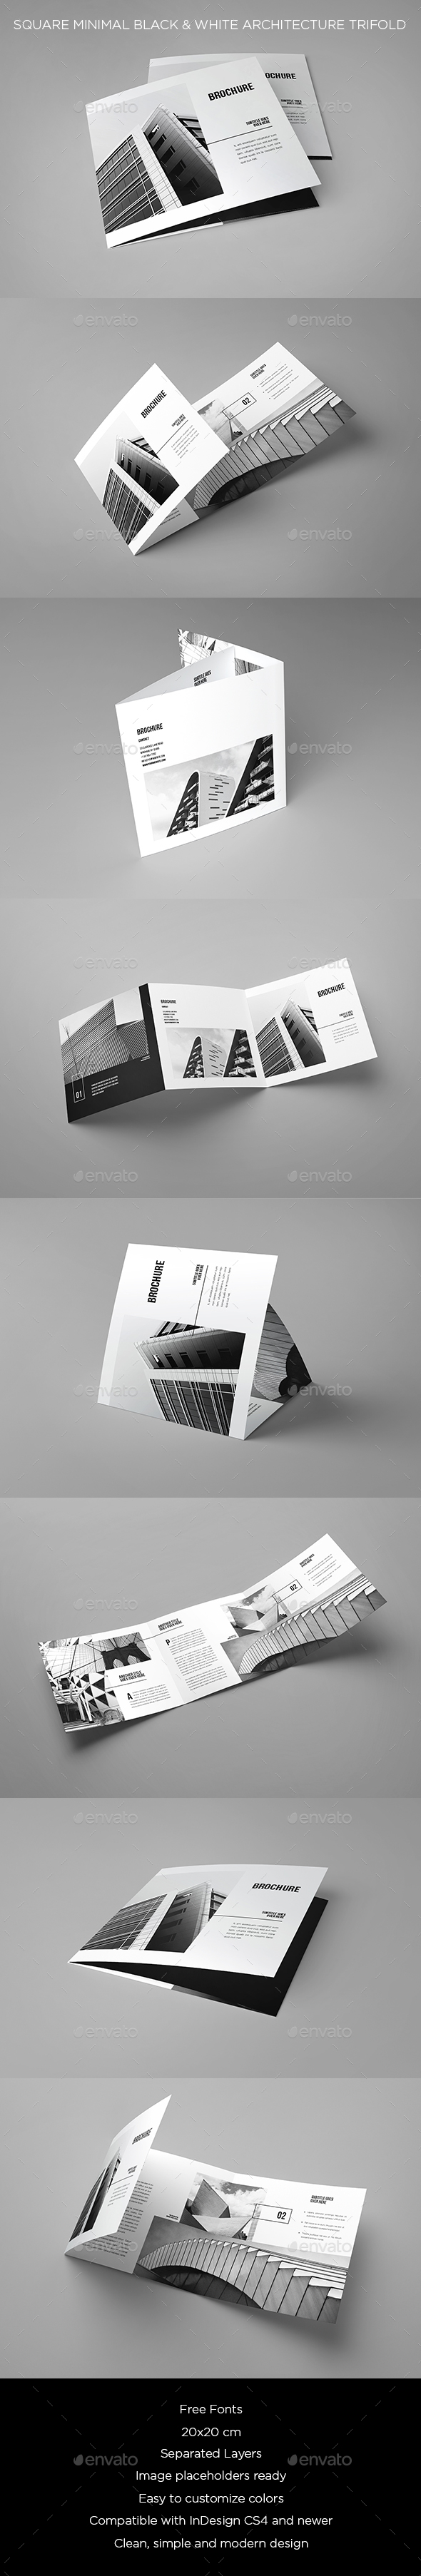 Square Minimal Black & White Architecture Trifold - Brochures Print Templates